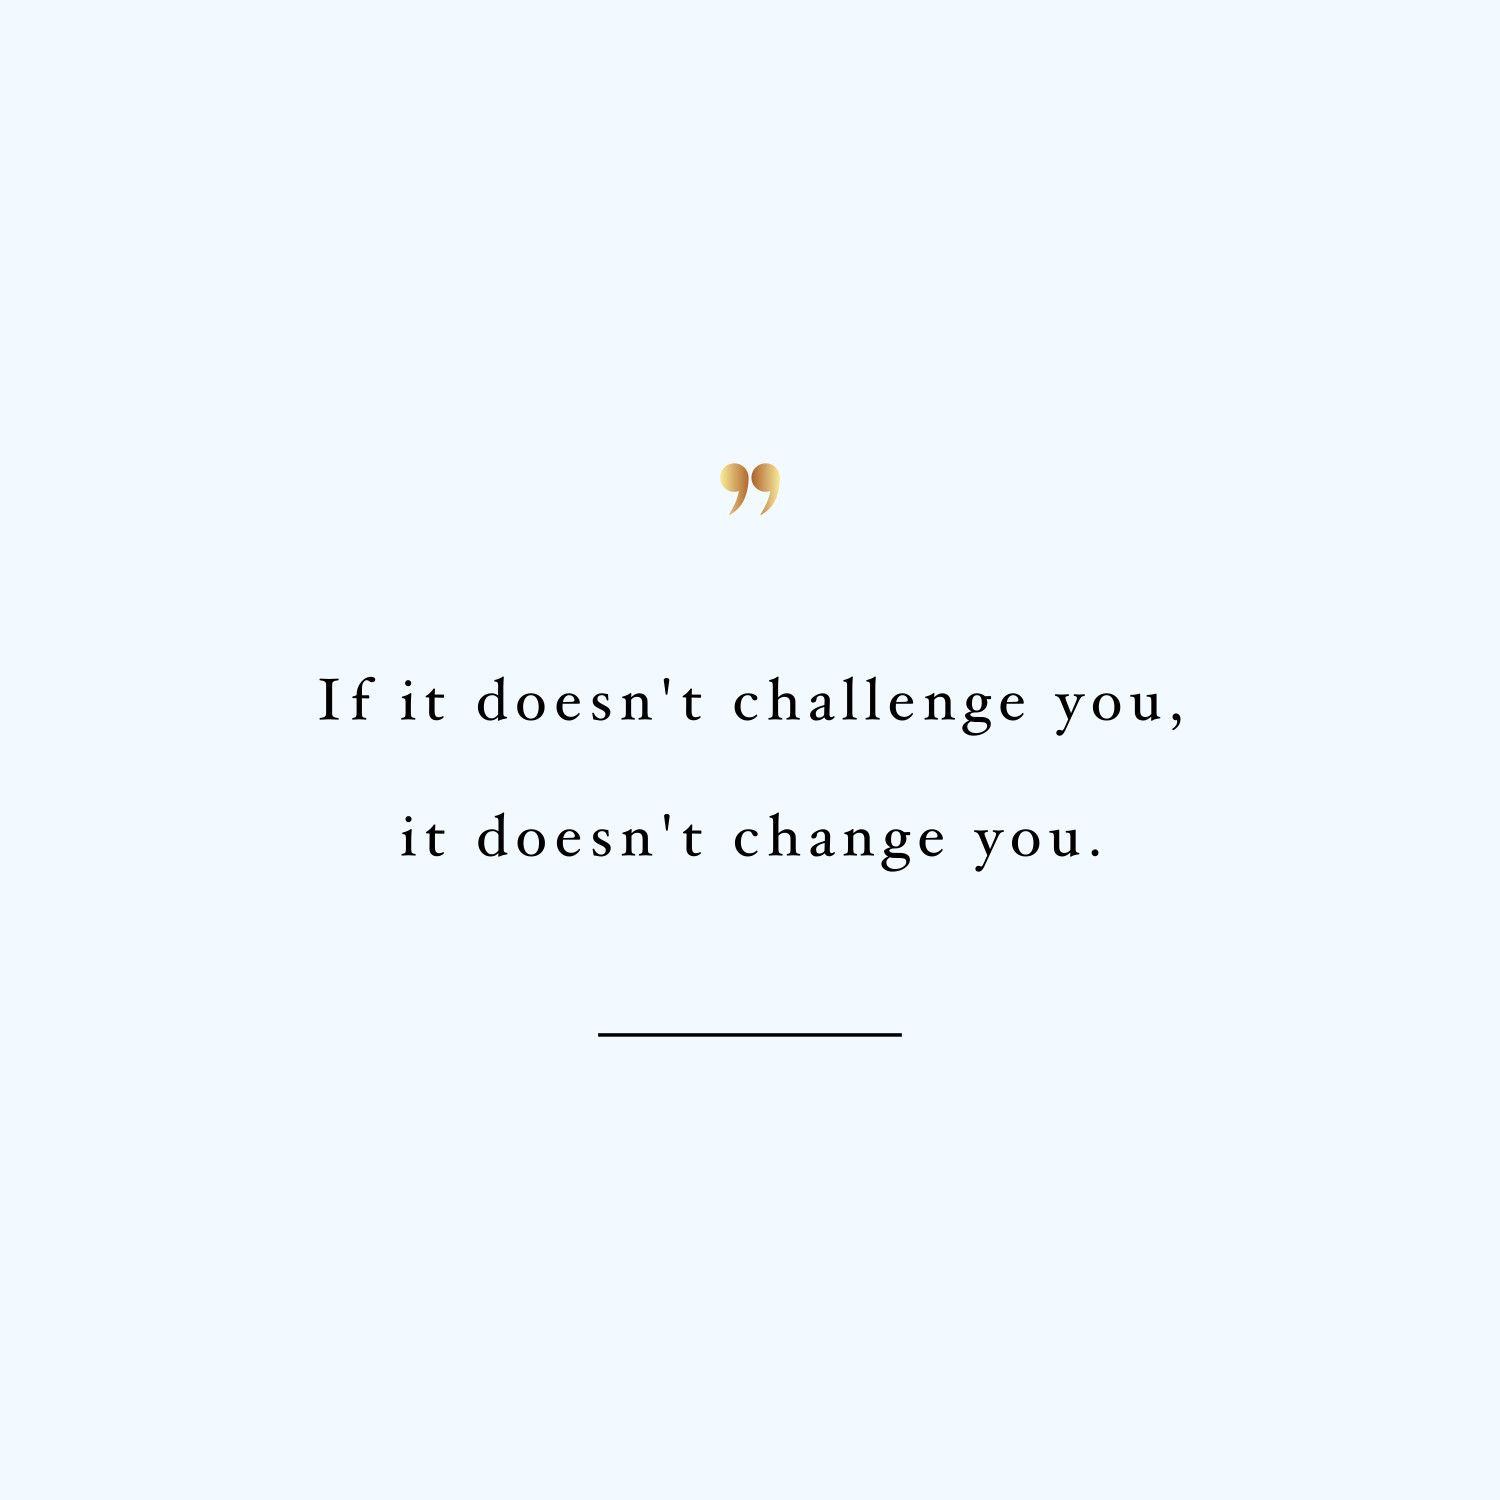 Stay Focused Quotes Challenge Yourself  Motivational Fitness Quotes Workout